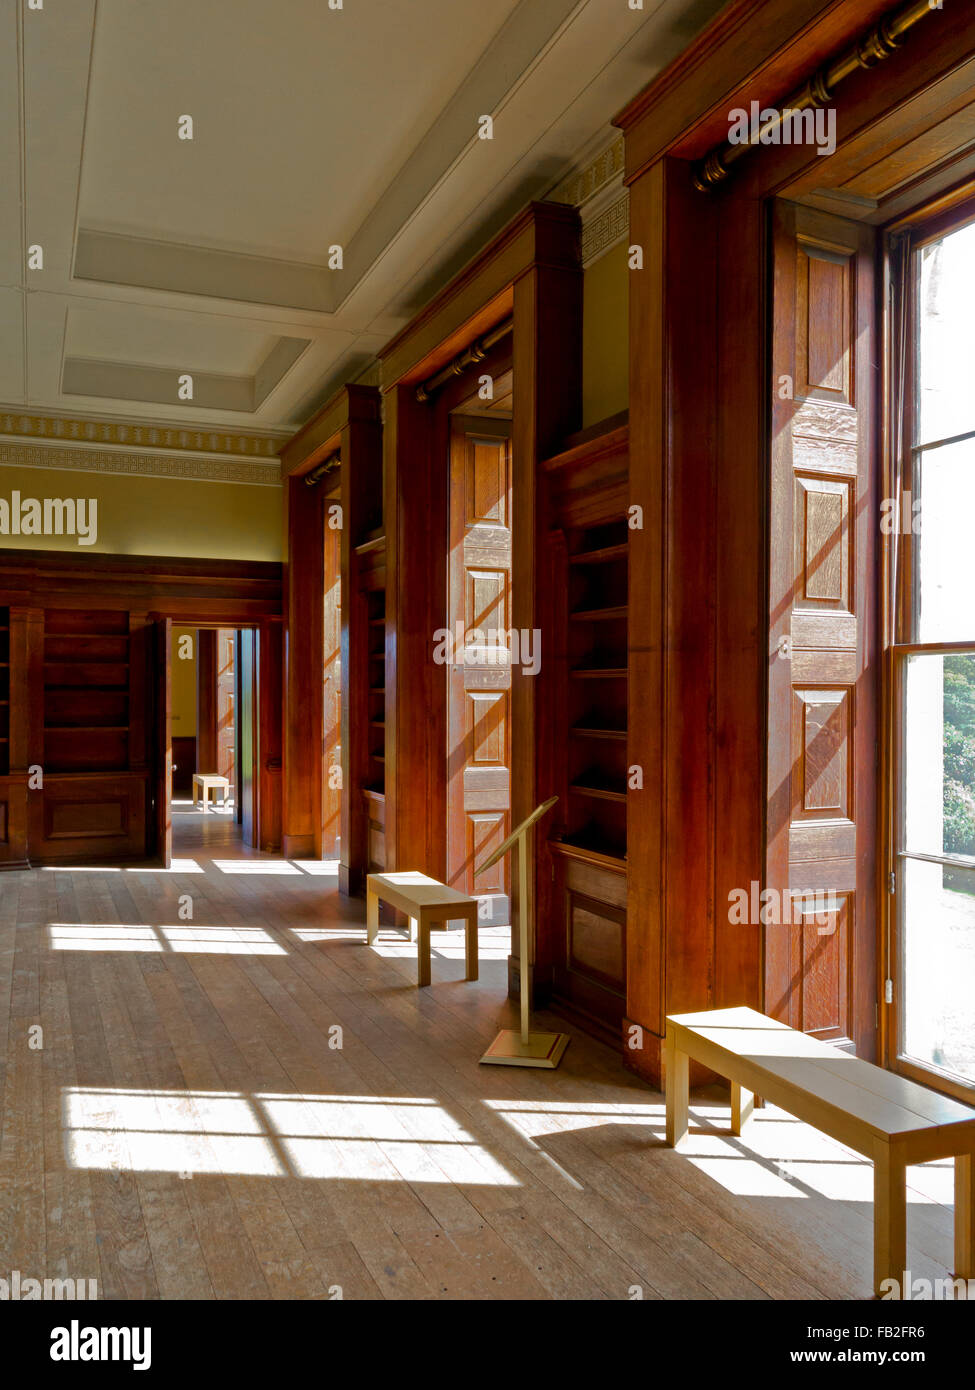 Library Interior At Belsay Hall A 19th Century Country Mansion In Northumberland England UK Built 1817 And Now Empty